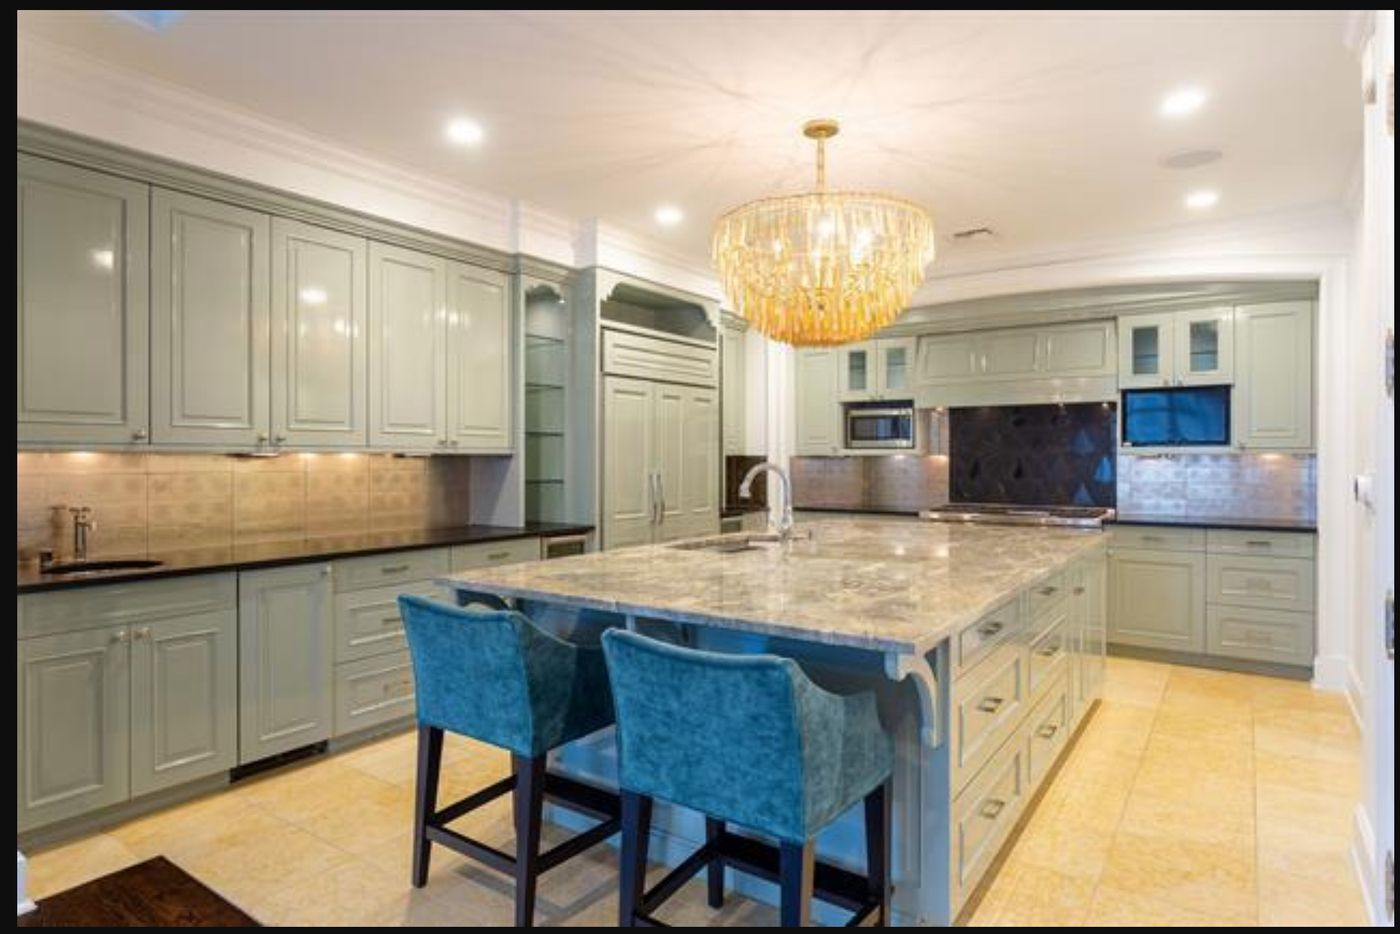 The kitchen has hand-crafted cabinetry.